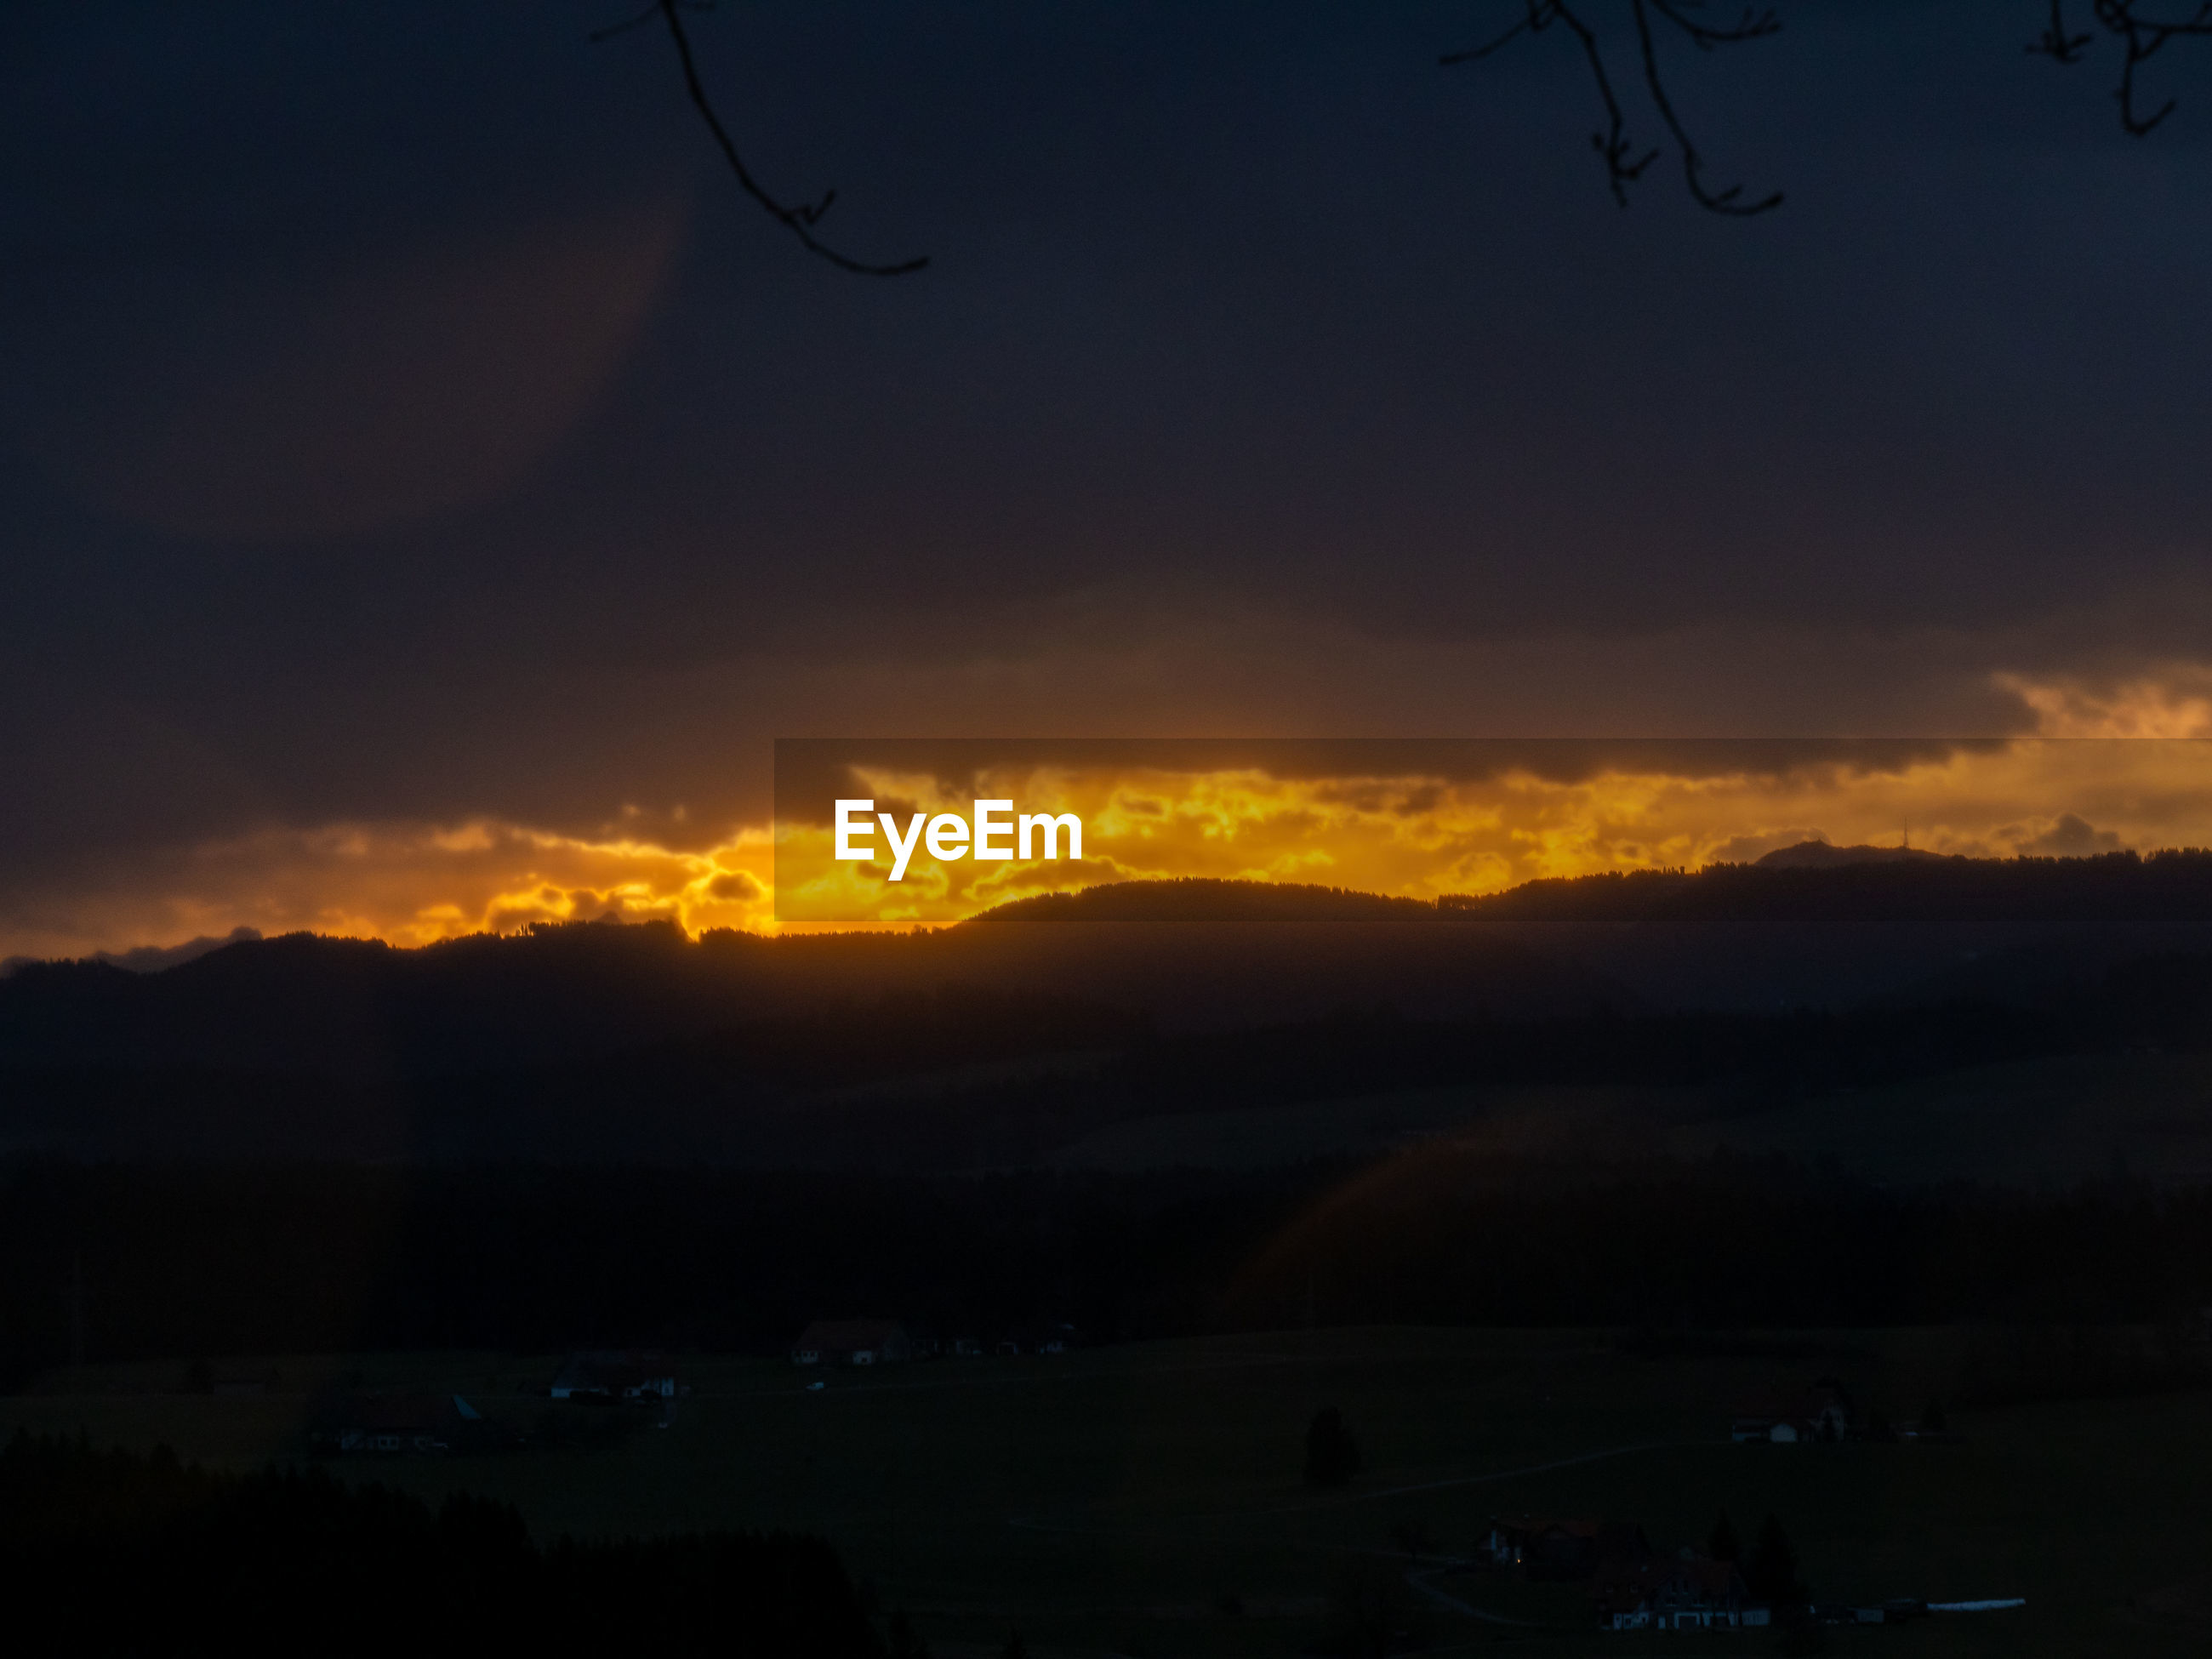 SCENIC VIEW OF SILHOUETTE MOUNTAIN AGAINST DRAMATIC SKY